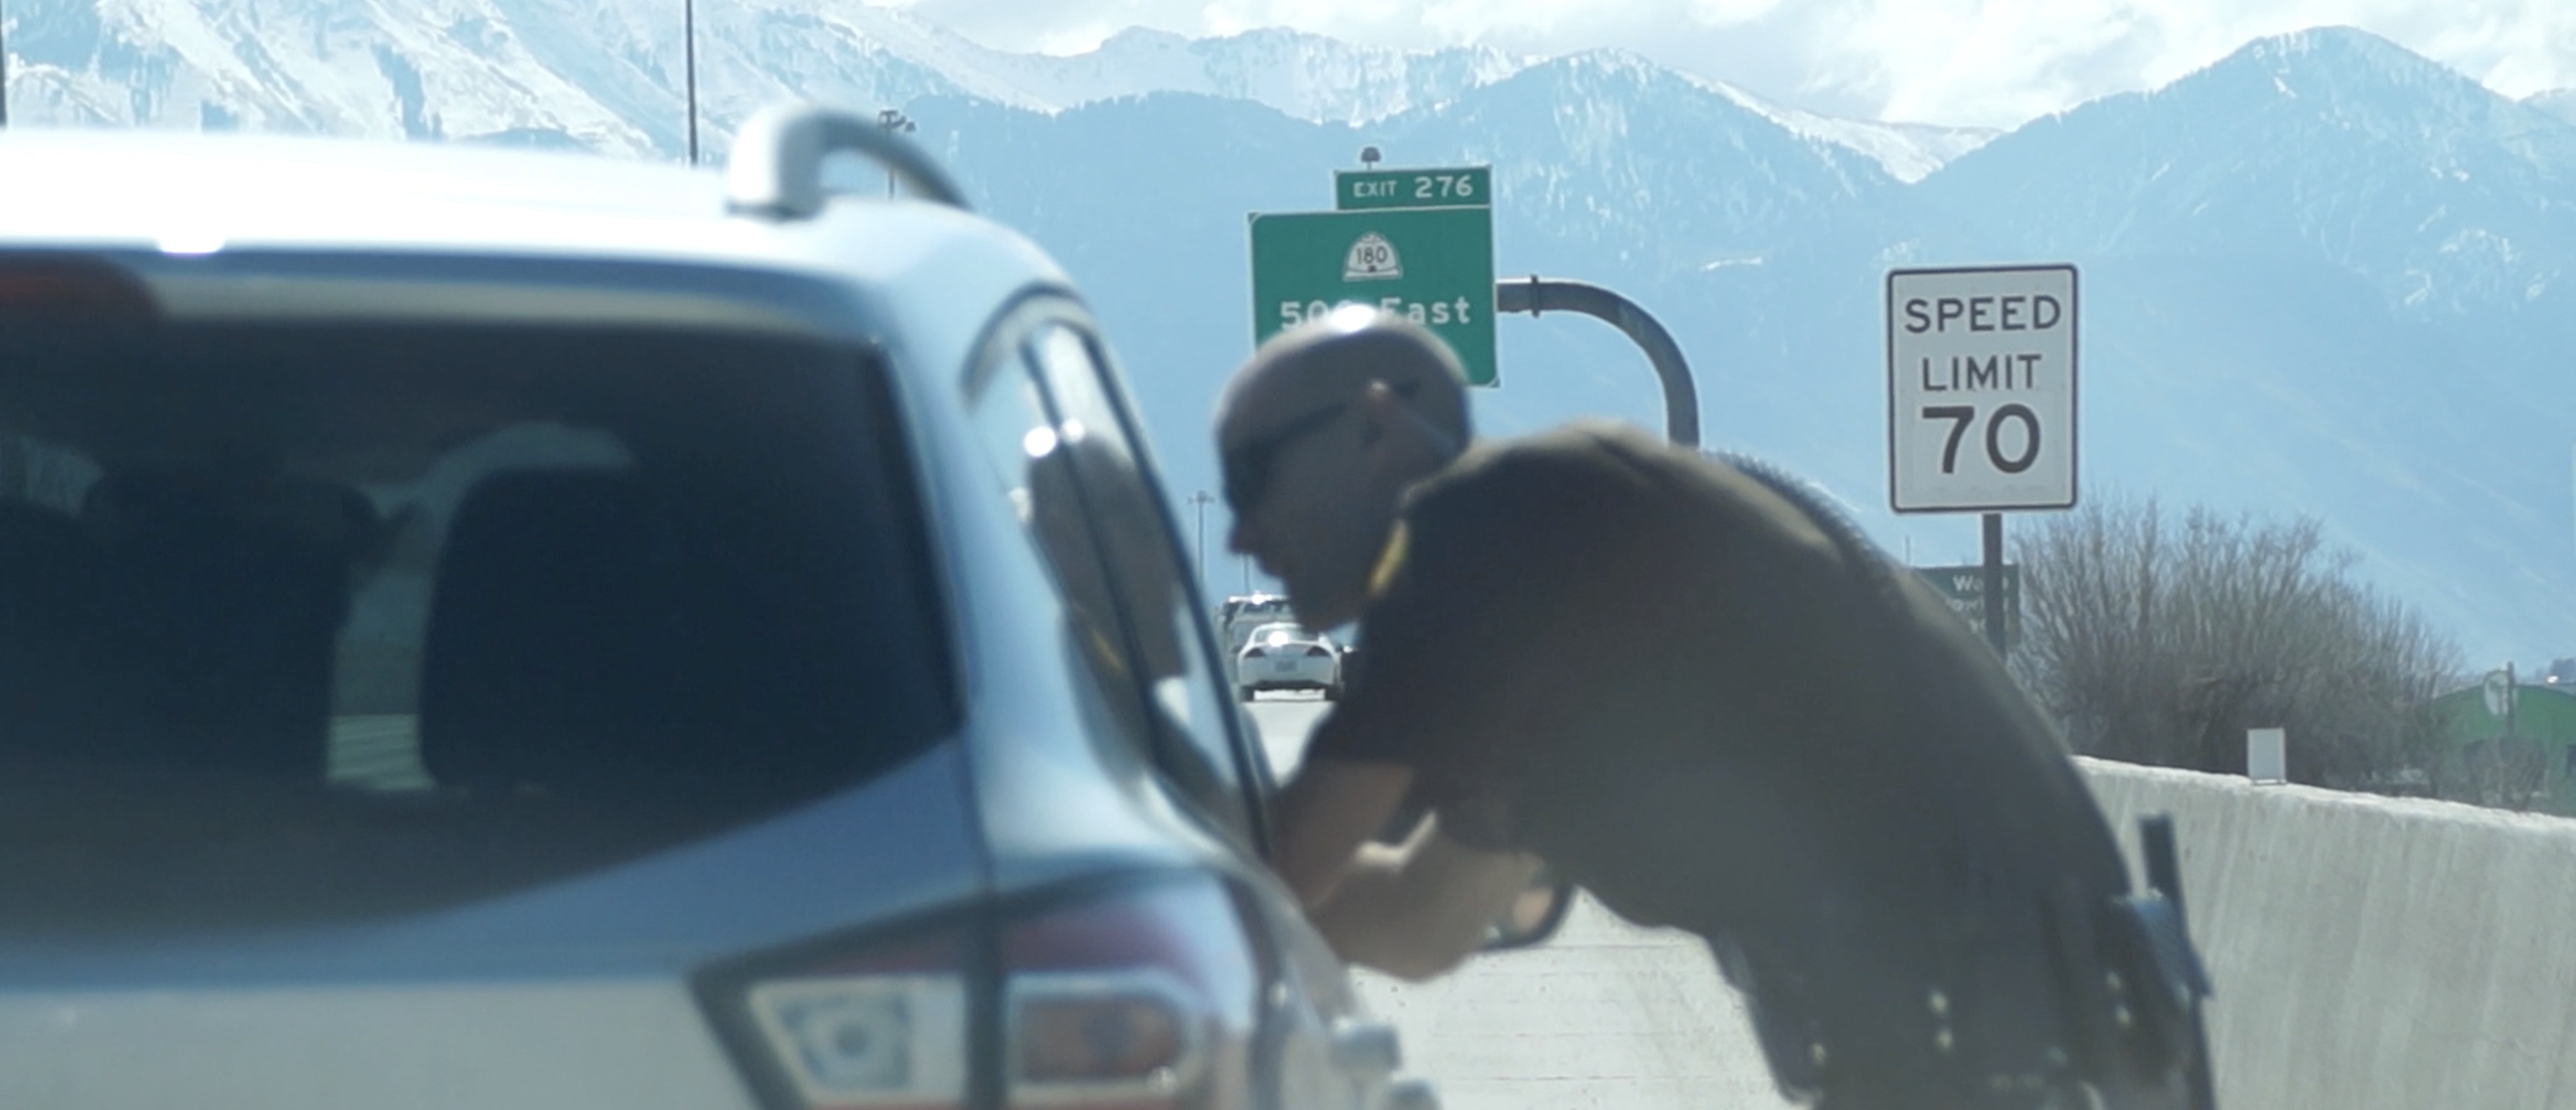 UHP trooper conducting a traffic stop.